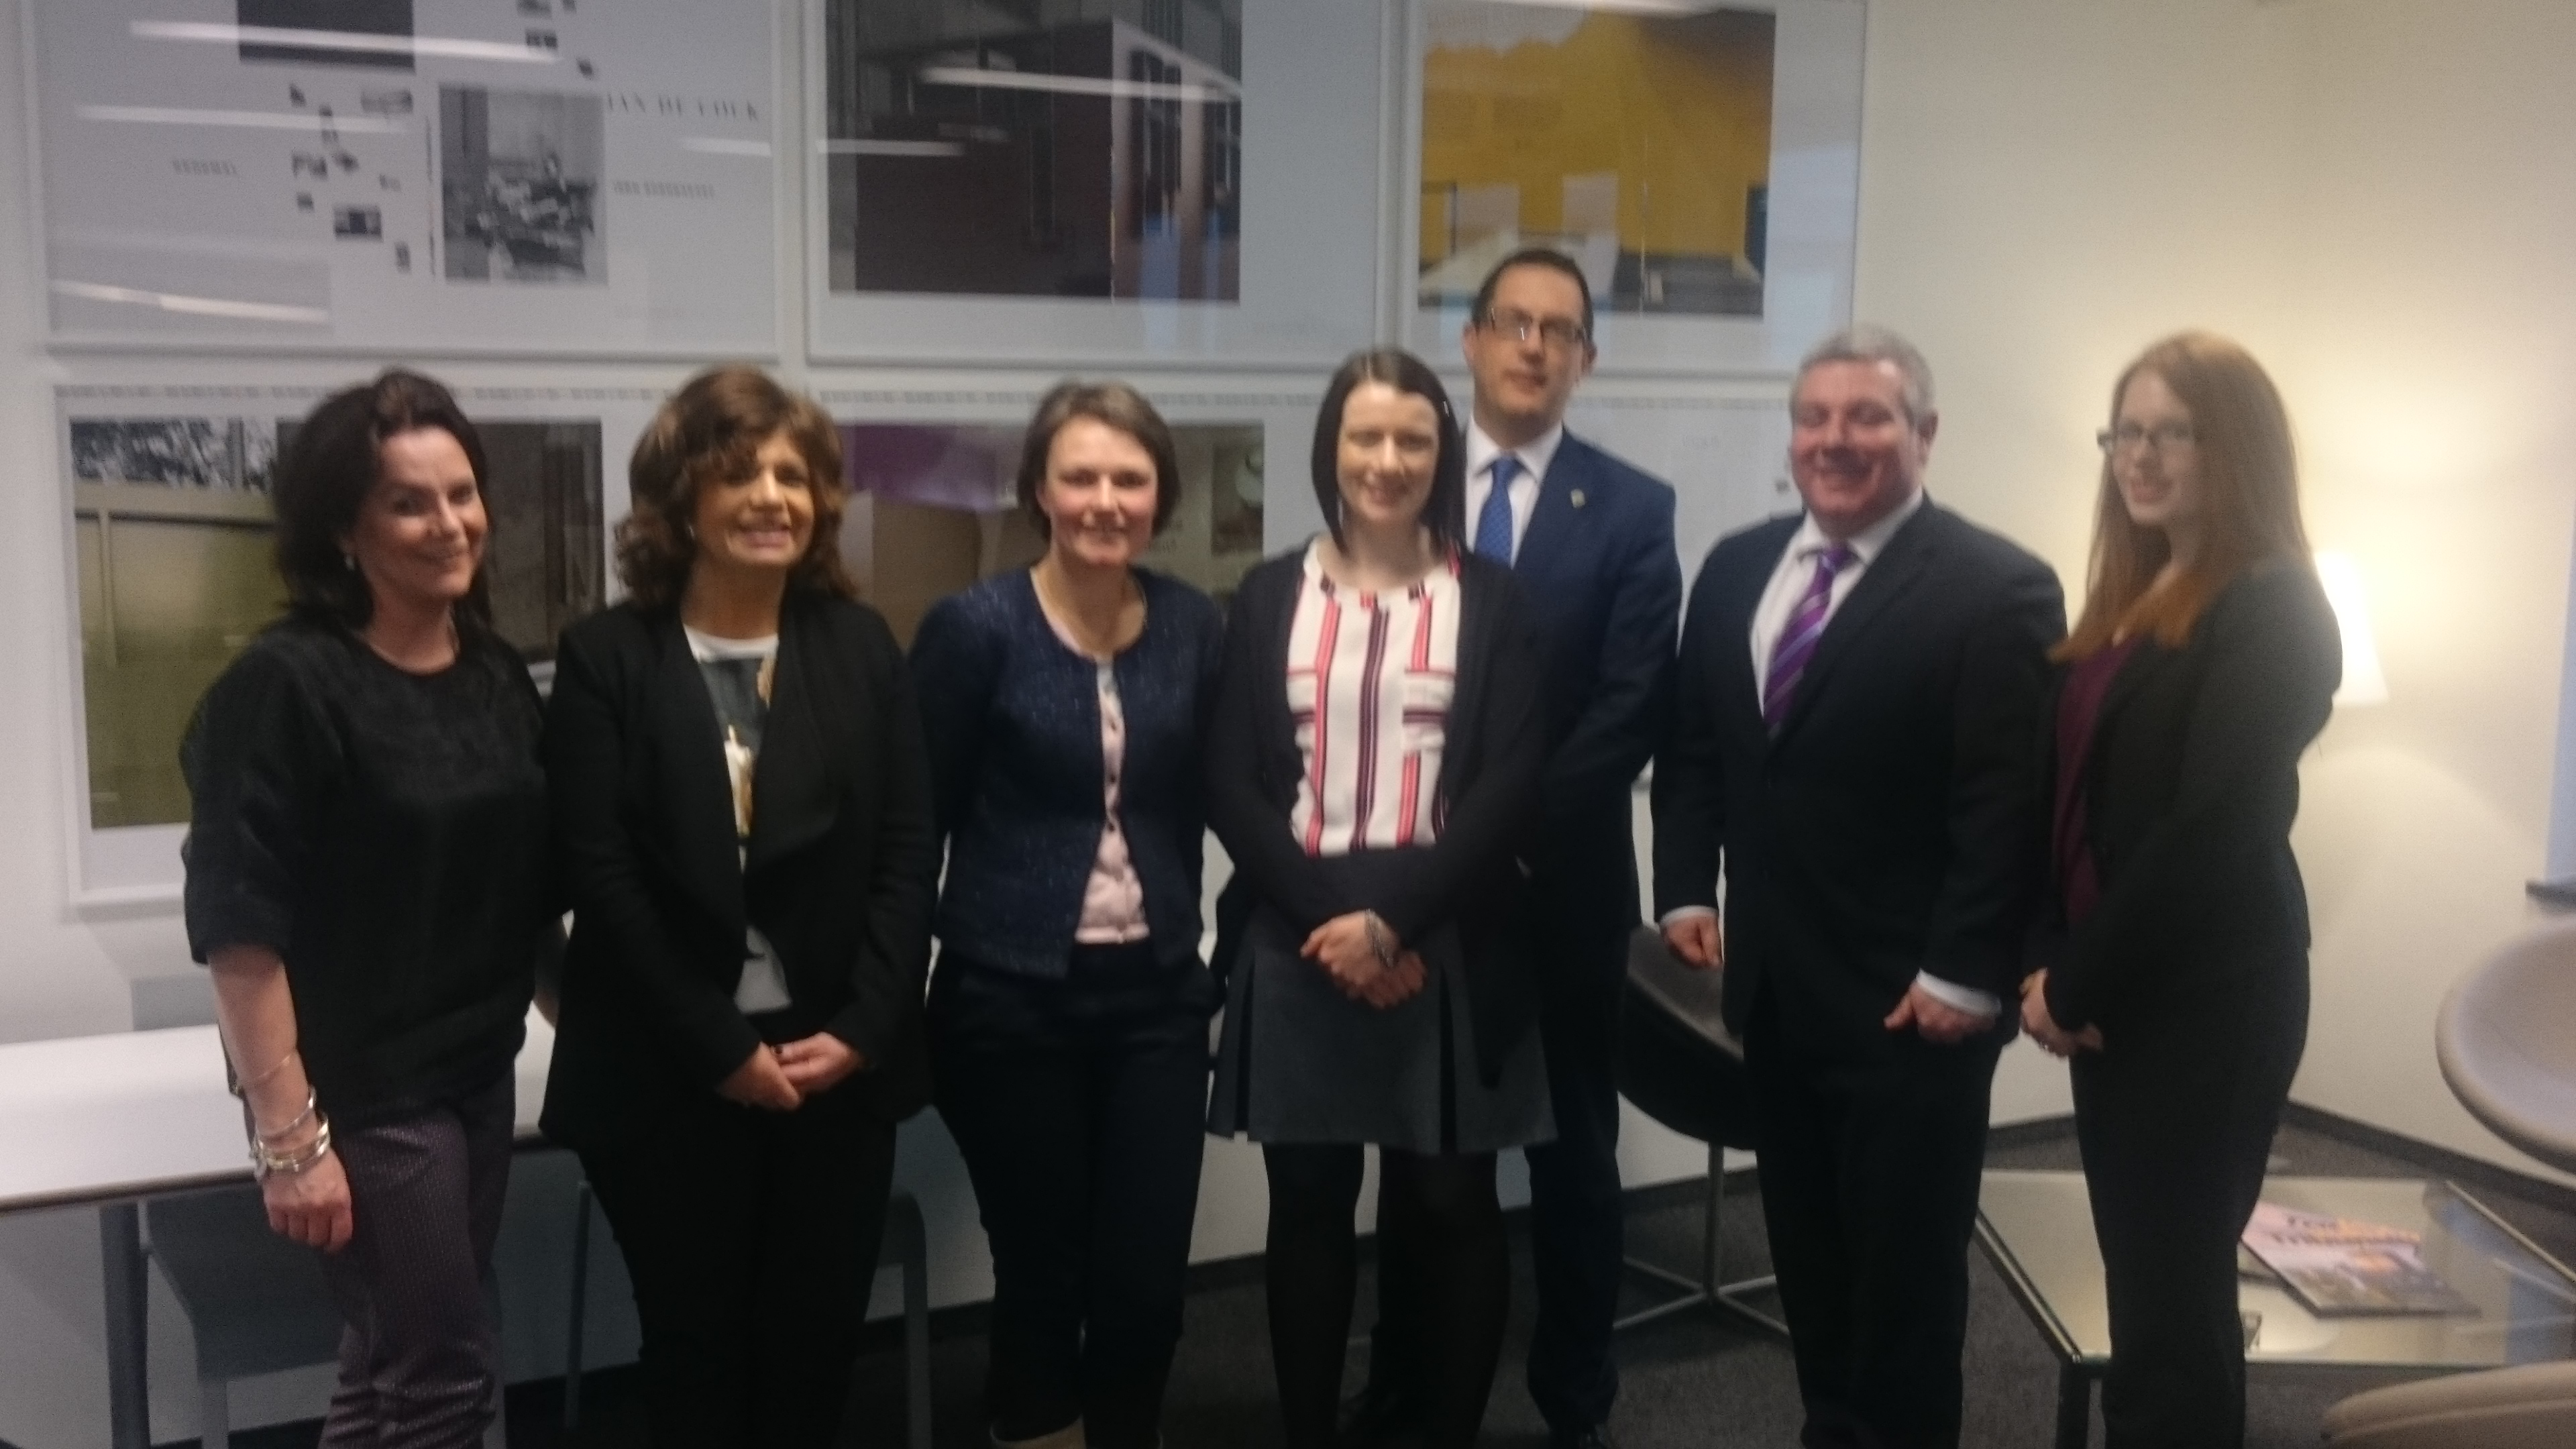 Cork Chamber of Commerce's delegation to Brussels on Innovation and Entrepreneur